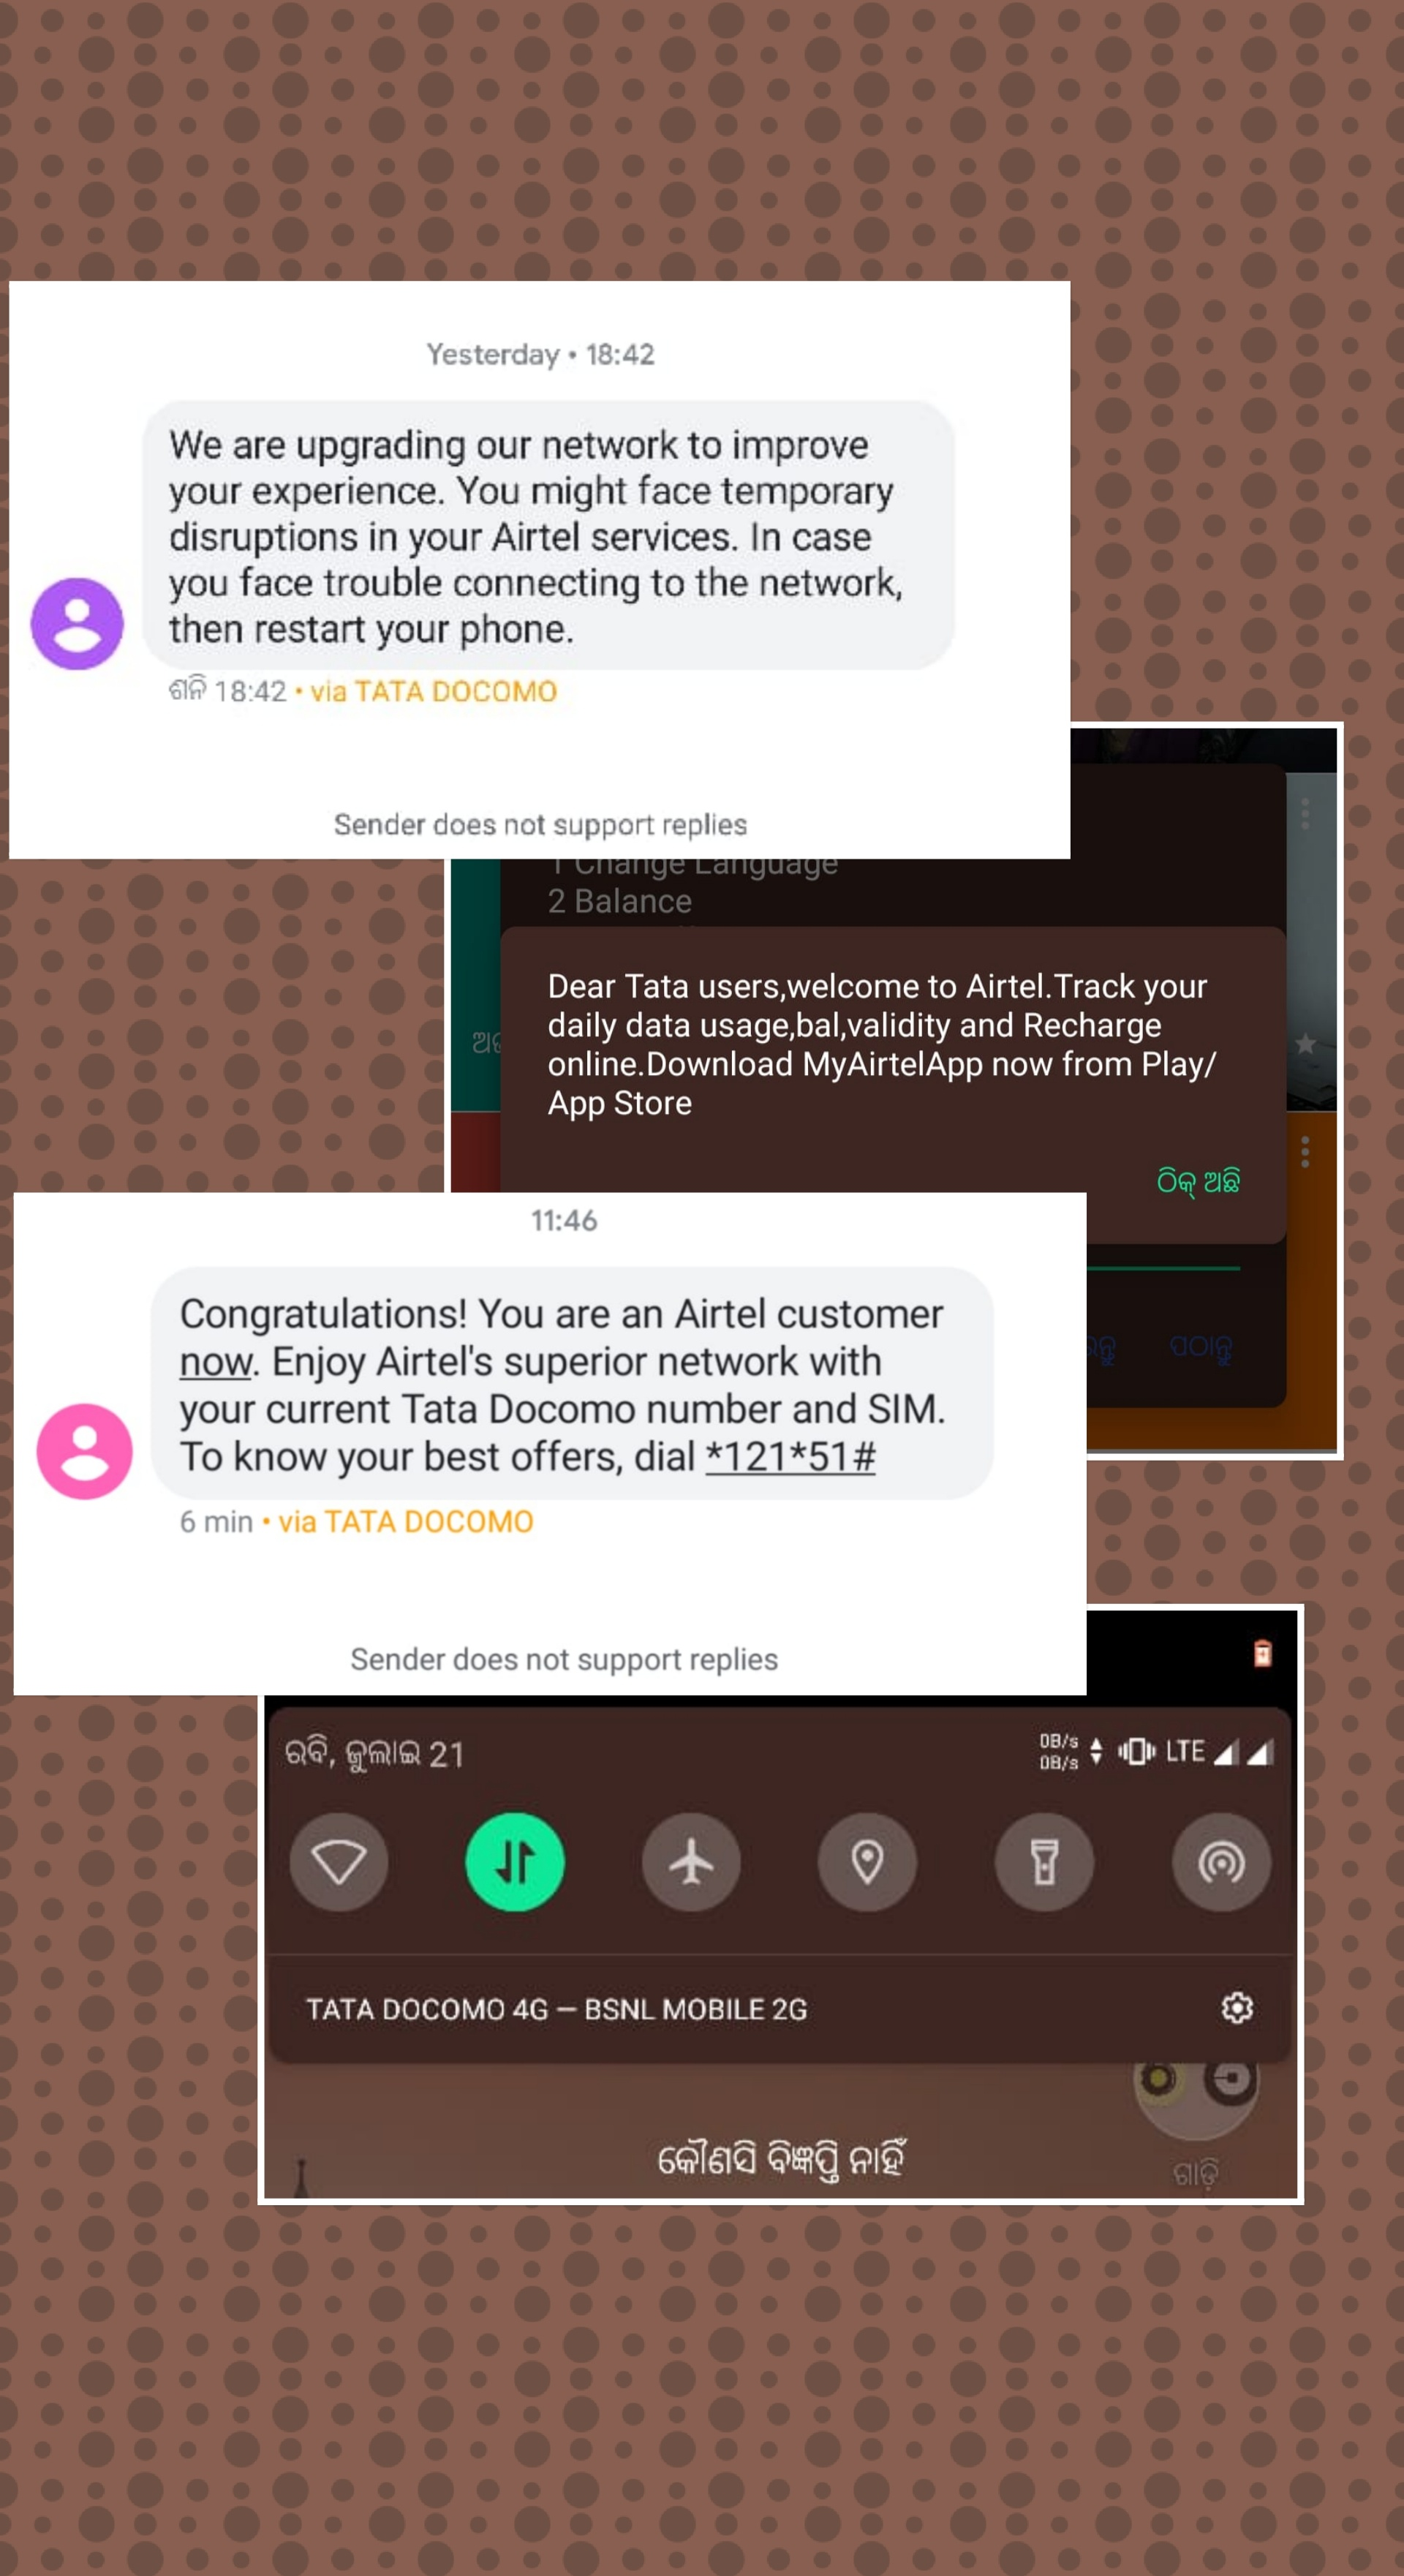 How to port my number from Docomo to Airtel 4G - Quora